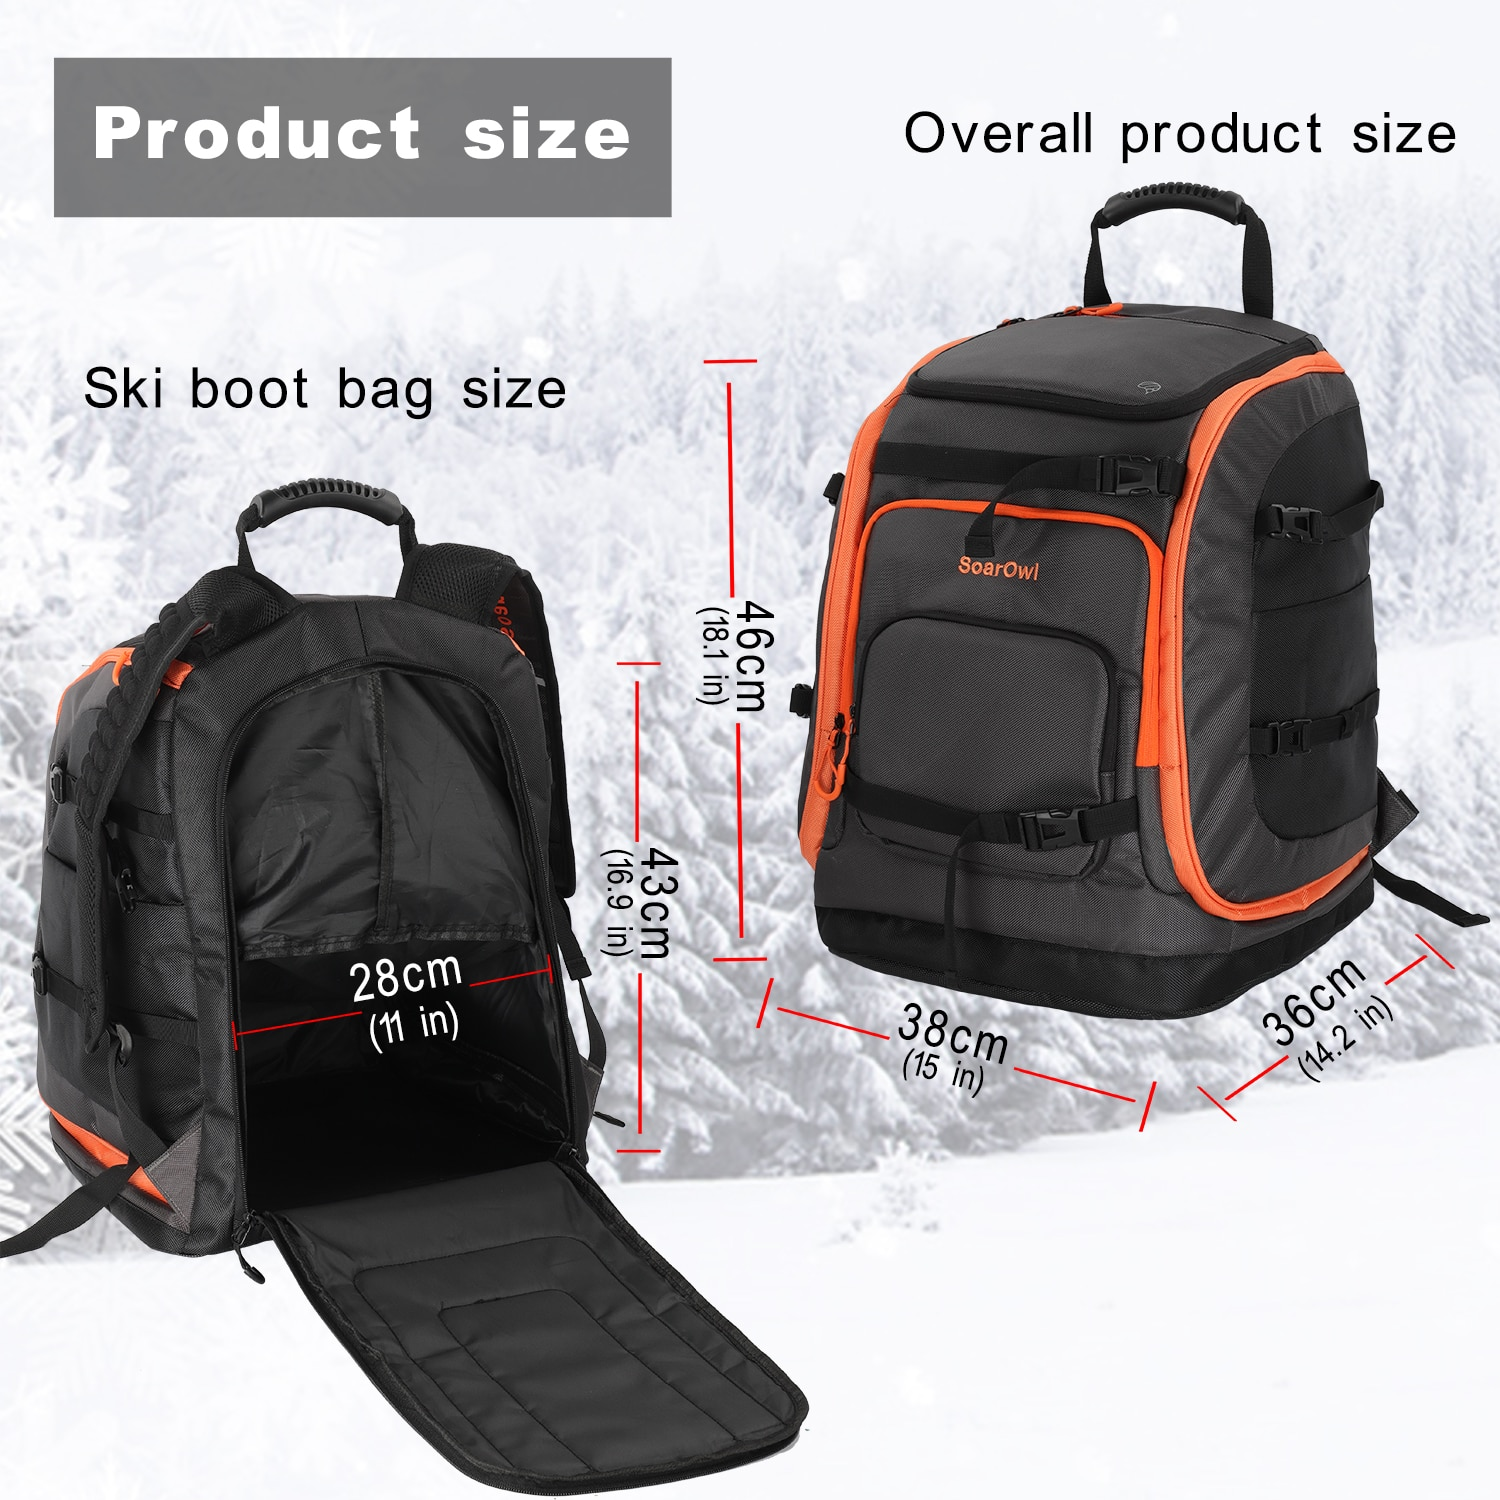 SolarOwl Ski Boot Bag 50L Large Capacity Storage Boots Helmet Clothing Can Be Placed Skis Backpack With Adjustable Waterproof